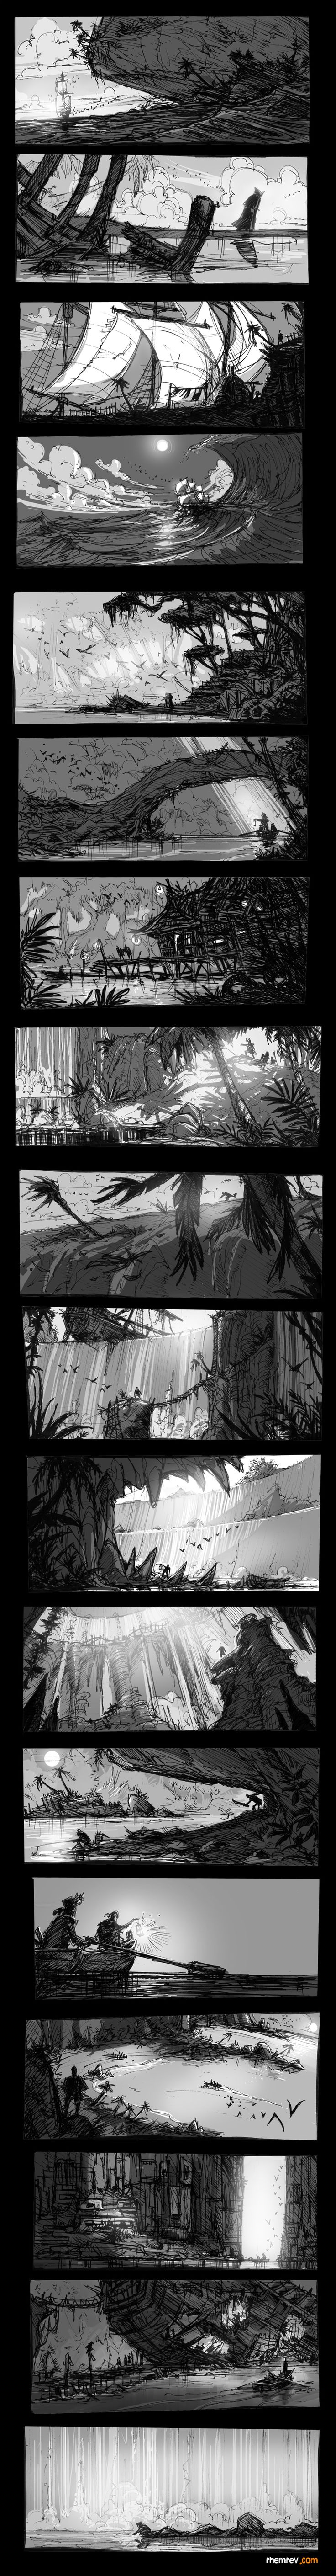 Great examples of large shapes for thumbnails. Look at positive / Negative space relations.